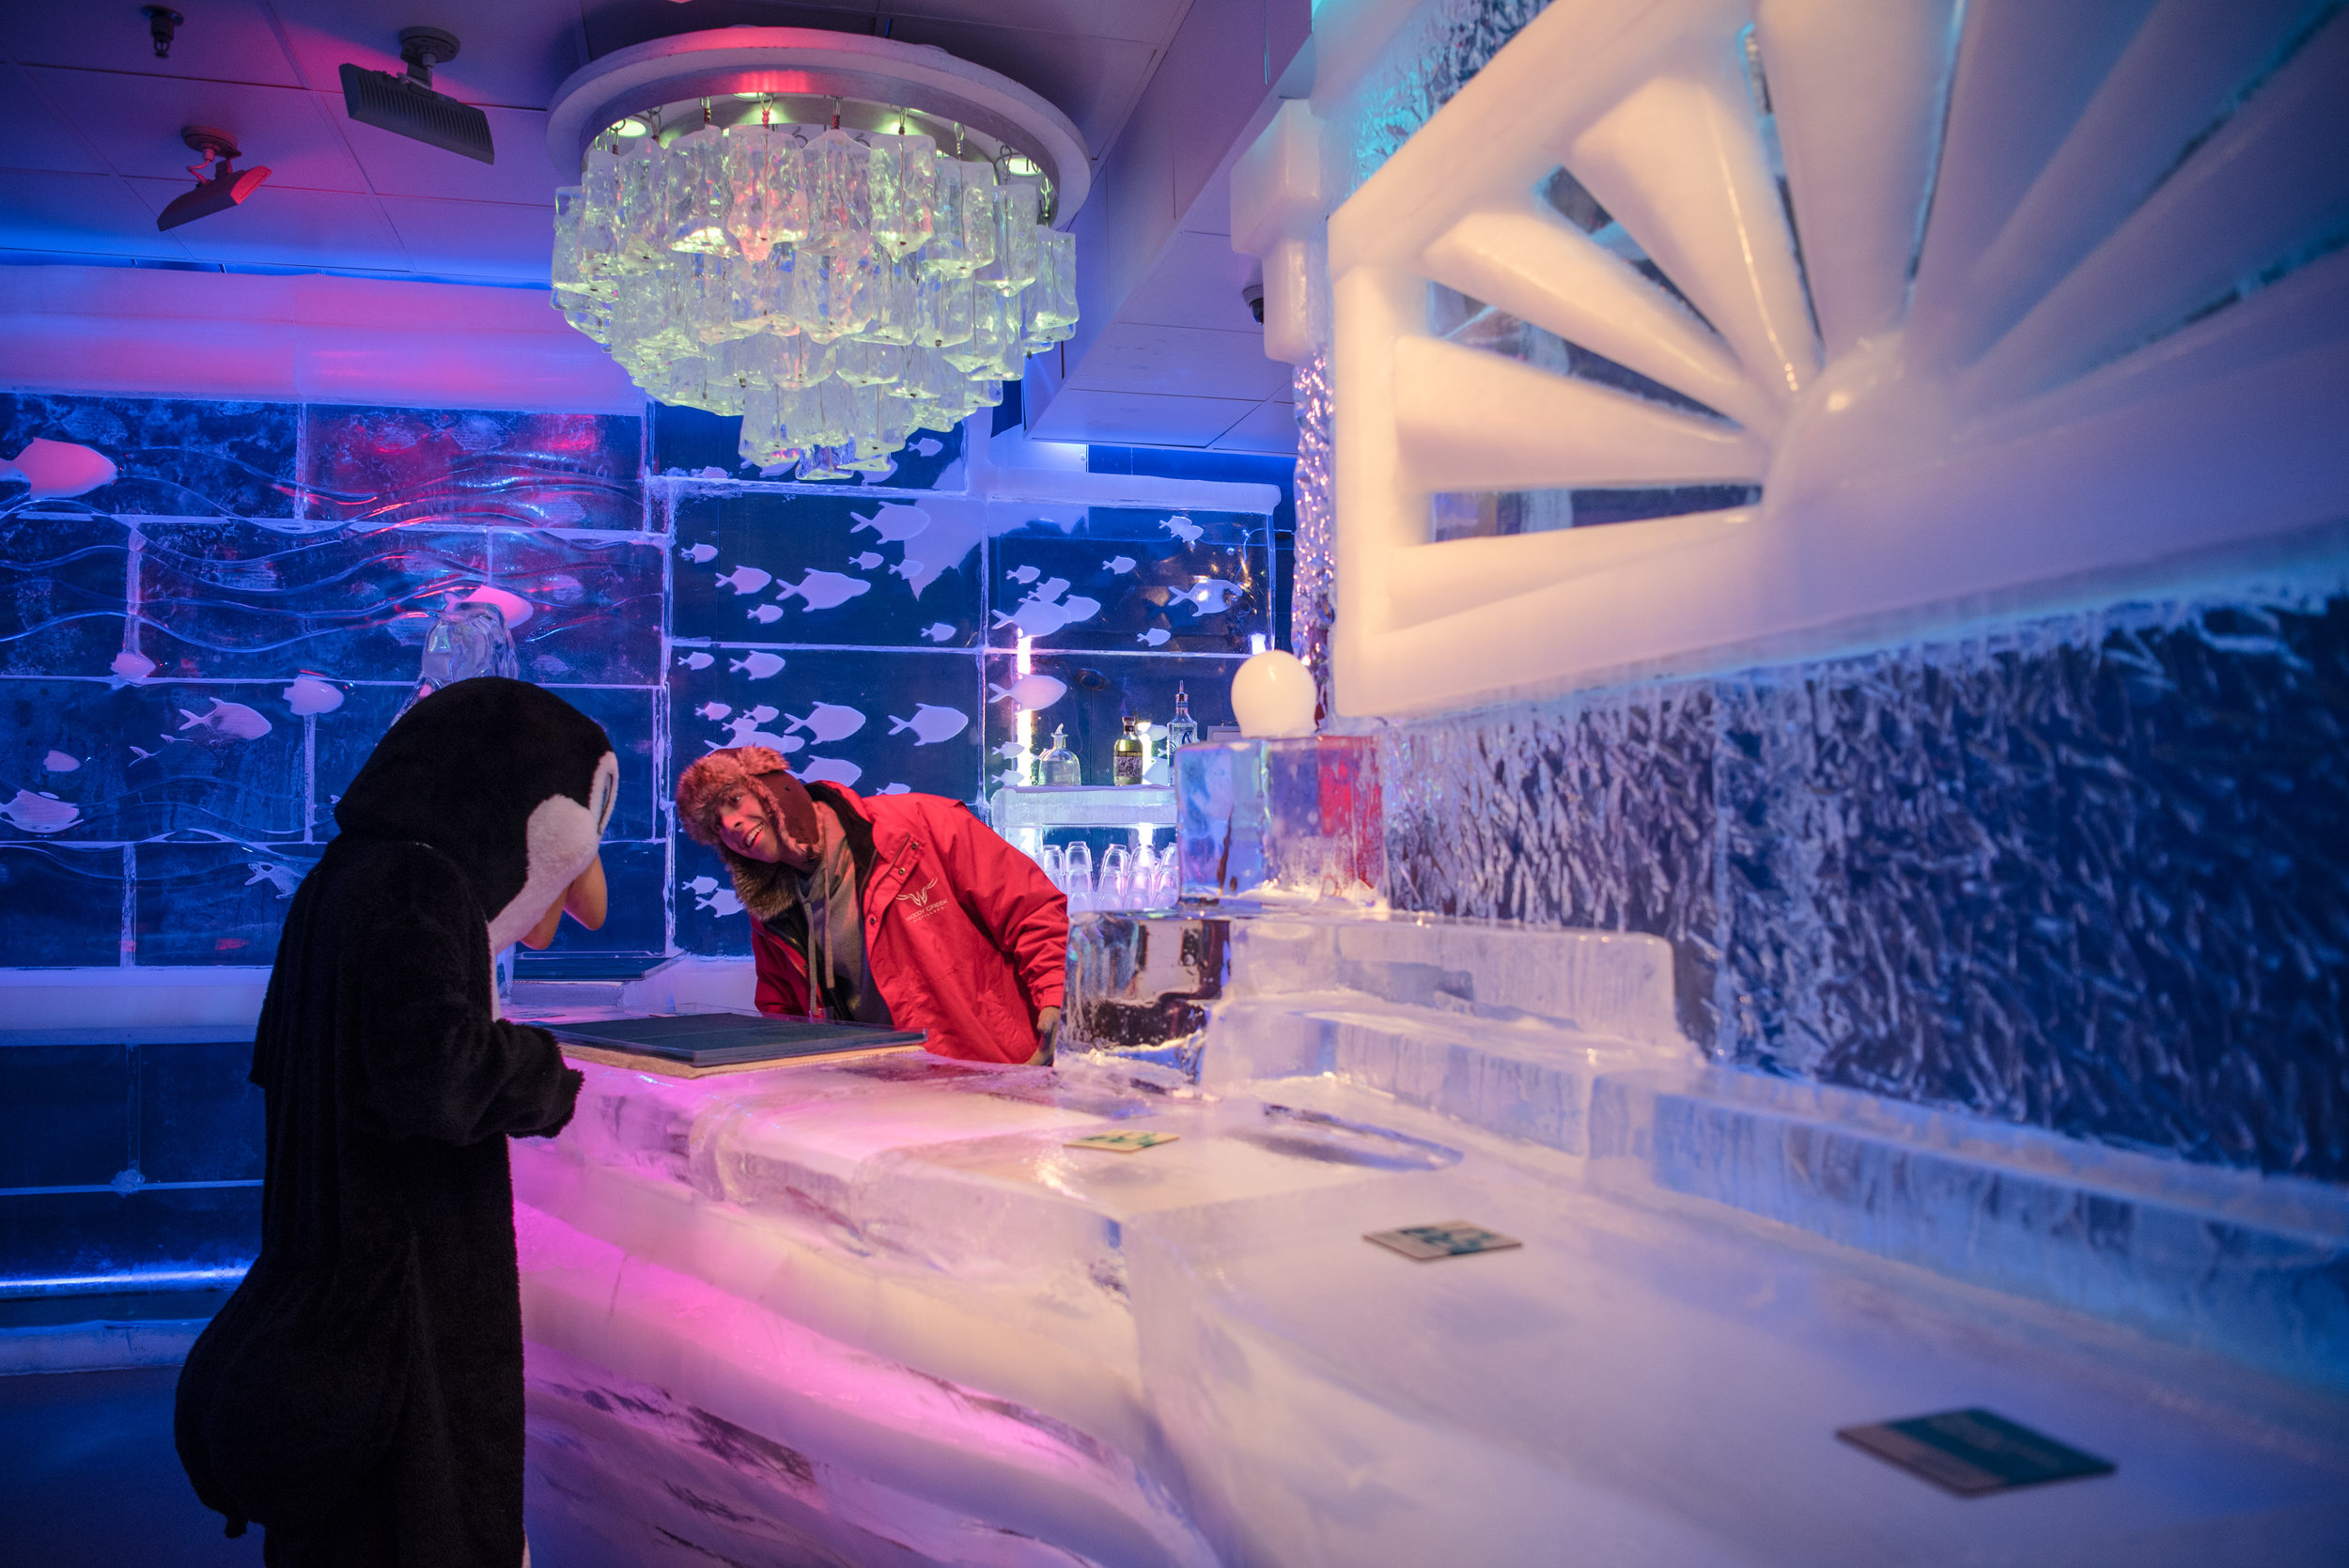 Derrick Howard and the entertaining penguin at the Minus 5 ice bar at Mandalay Bay Resort and Casino on Thursday, June 15, 2017, in Las Vegas. Morgan Lieberman/Las Vegas Review-Journal